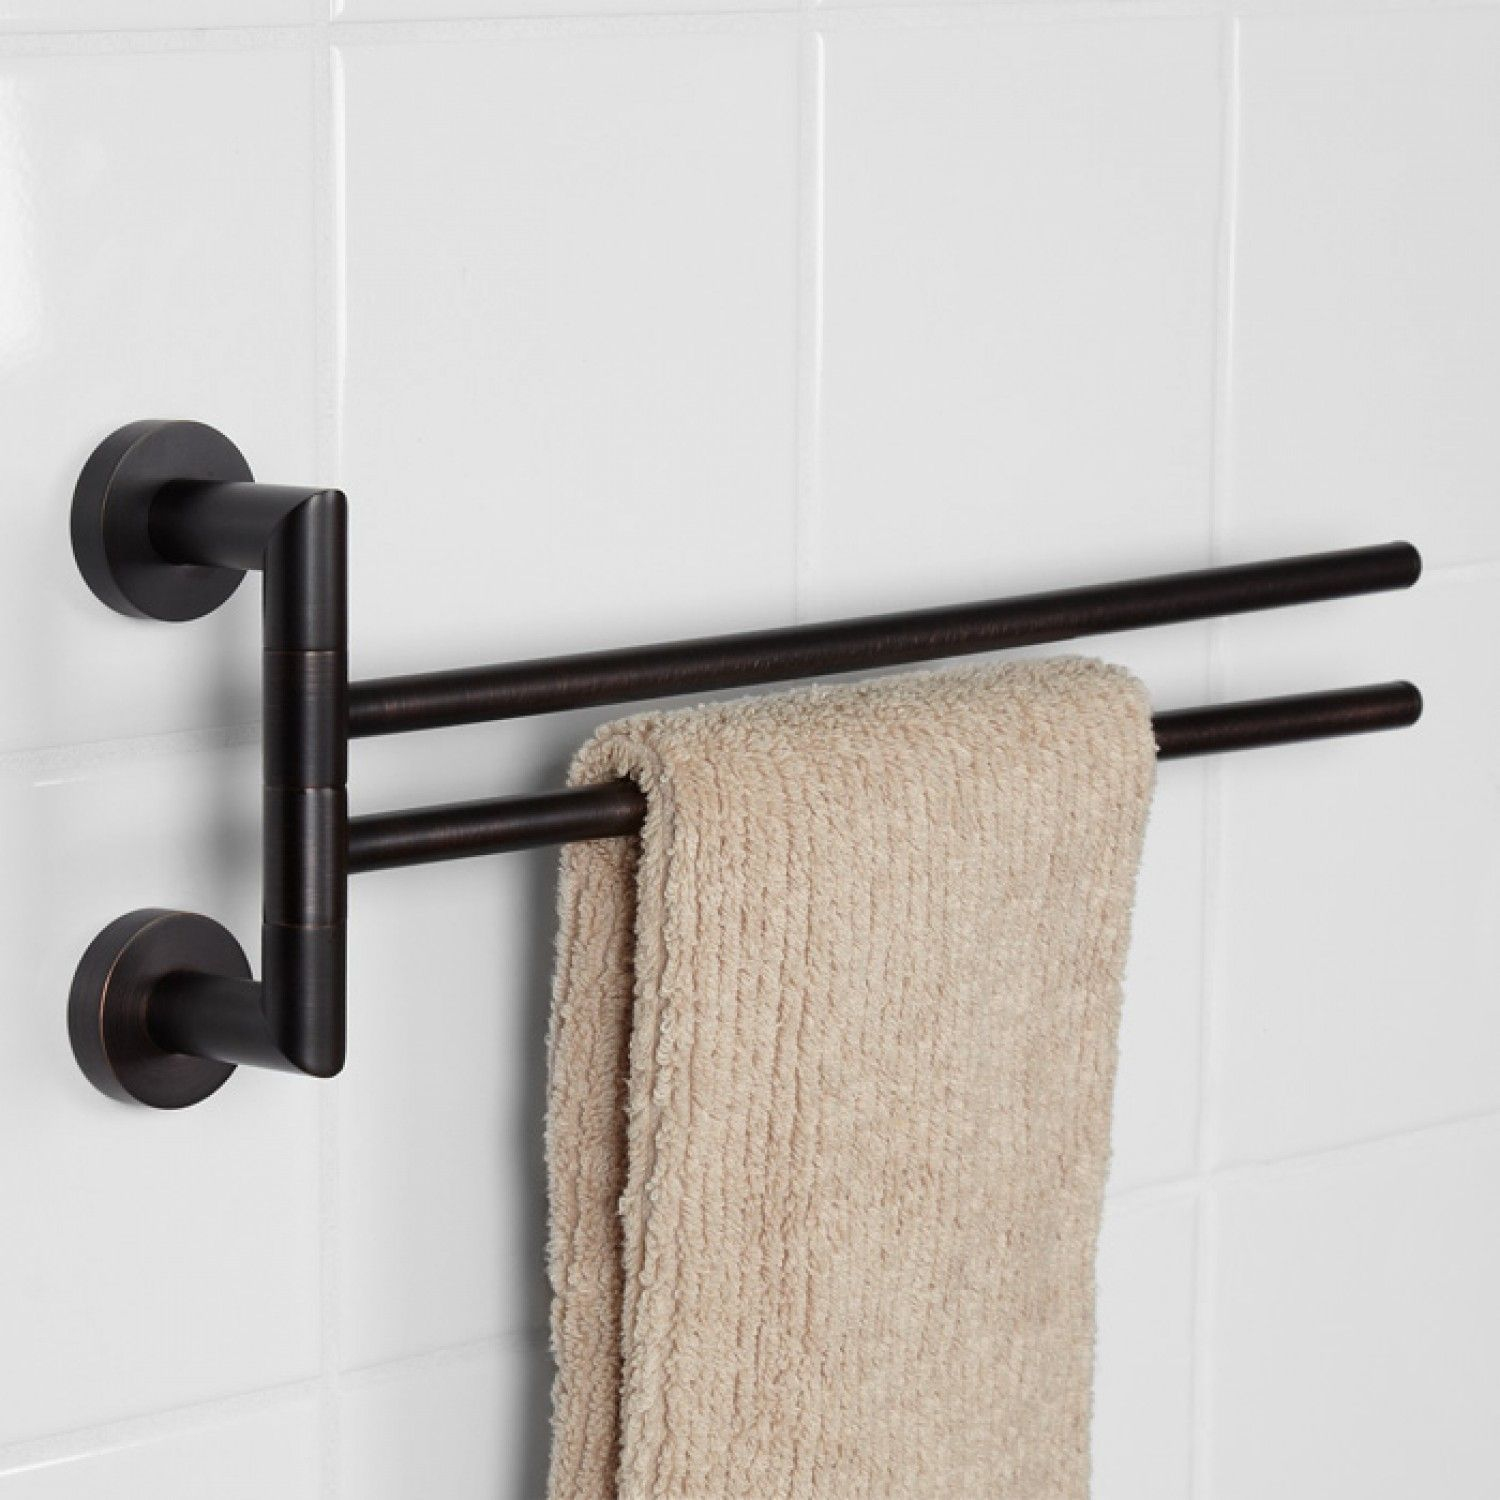 Bristow Double Swing Arm Towel Bar Bathroom Towel Bar Bathroom Towel Bar Double Swing